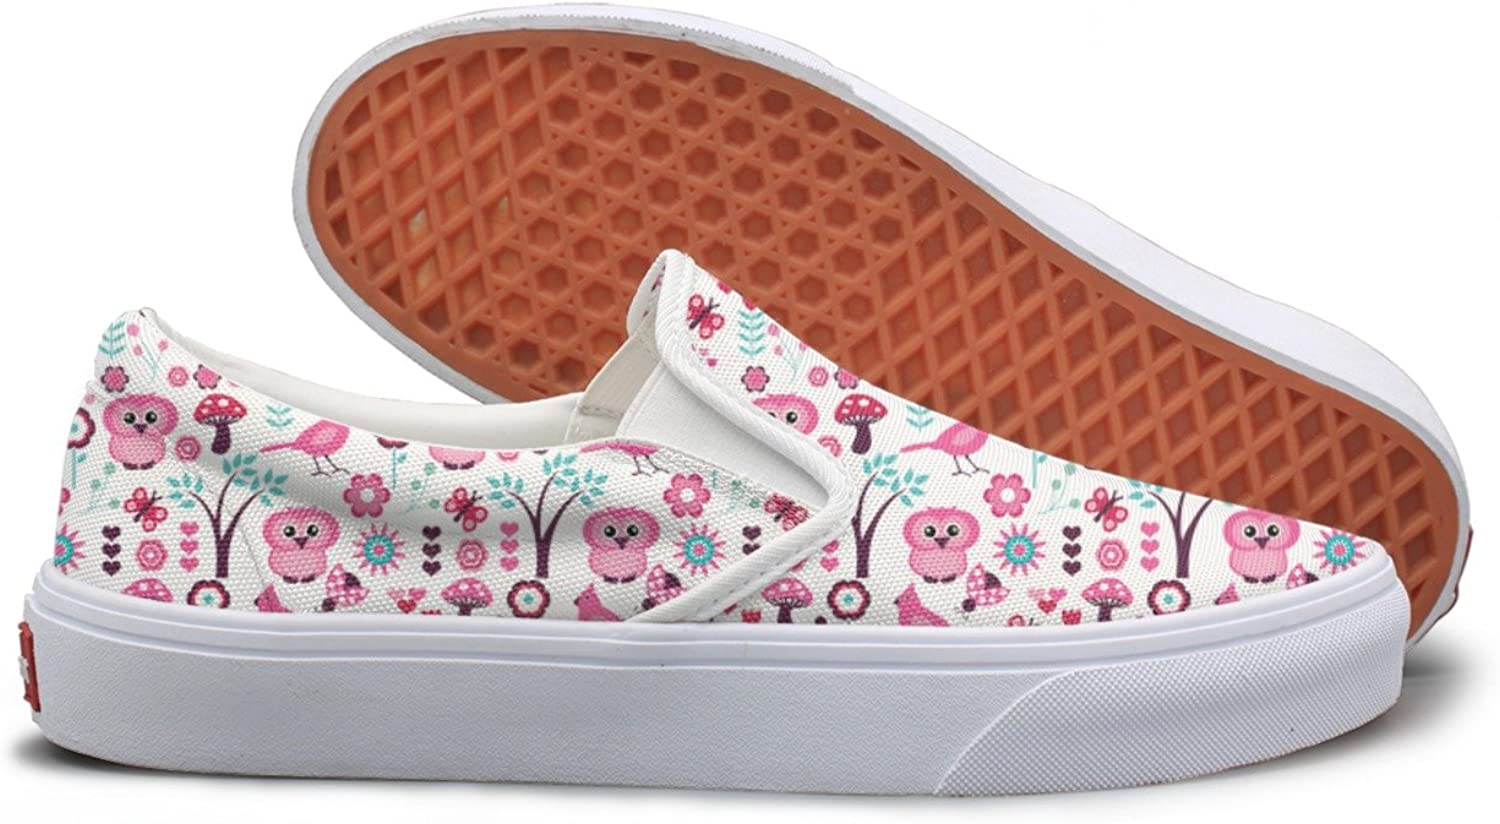 Lalige Birds Owl Flowers Women Printed Graphics Canvas Slip-on Walking shoes